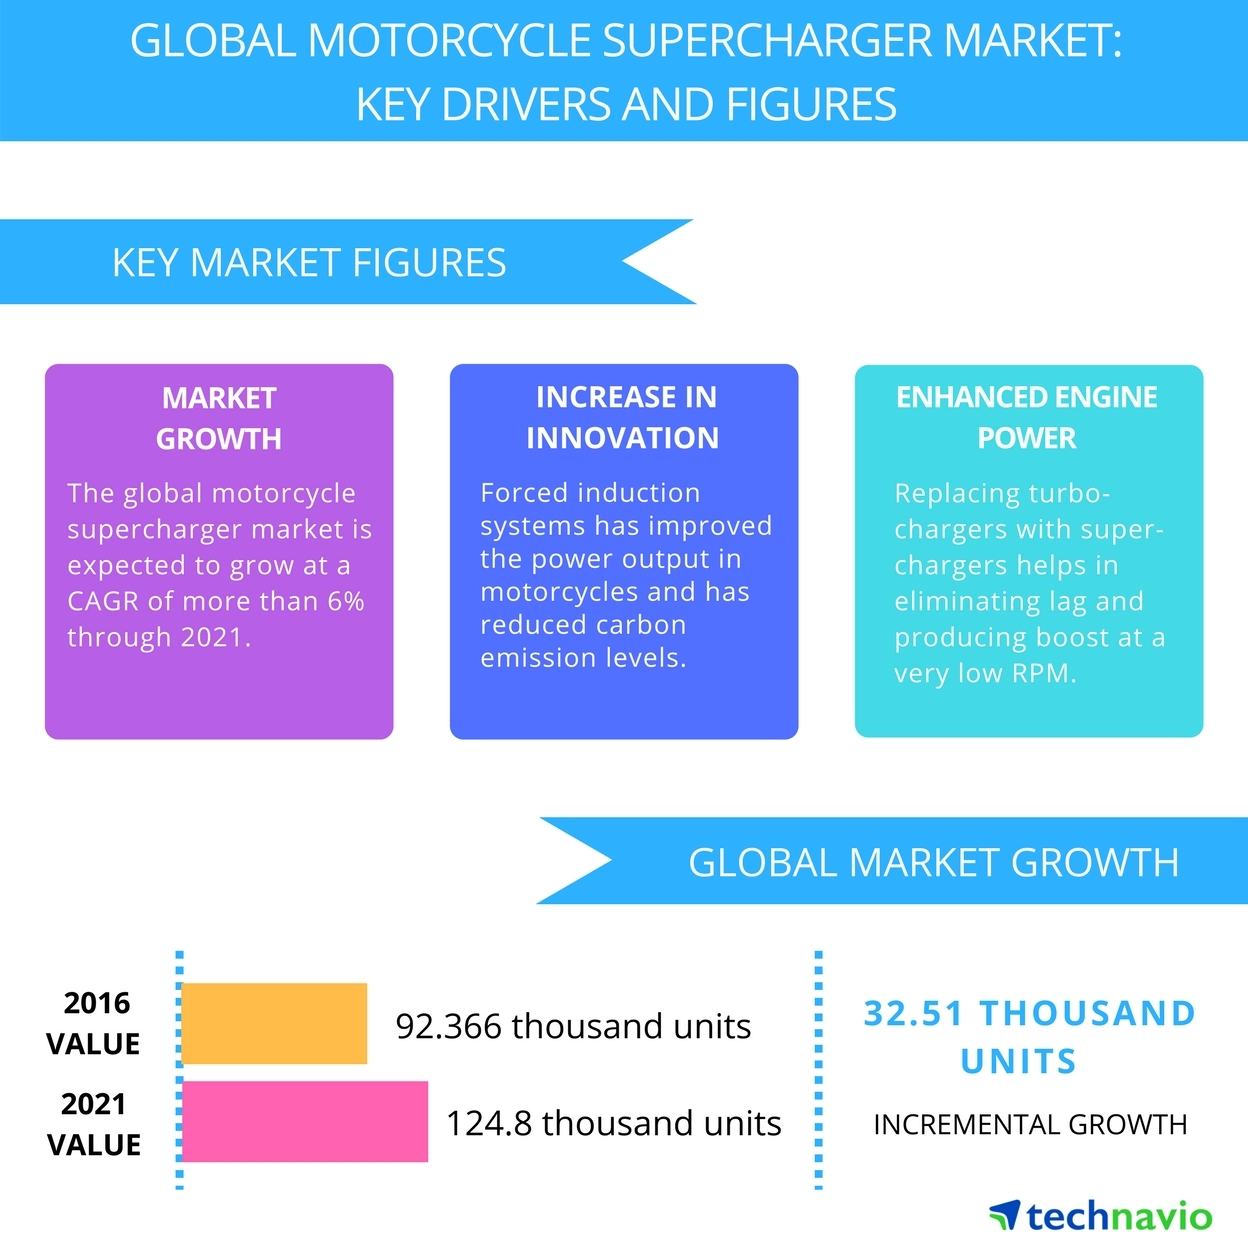 Motorcycle Supercharger Market - Trends and Forecasts by Technavio